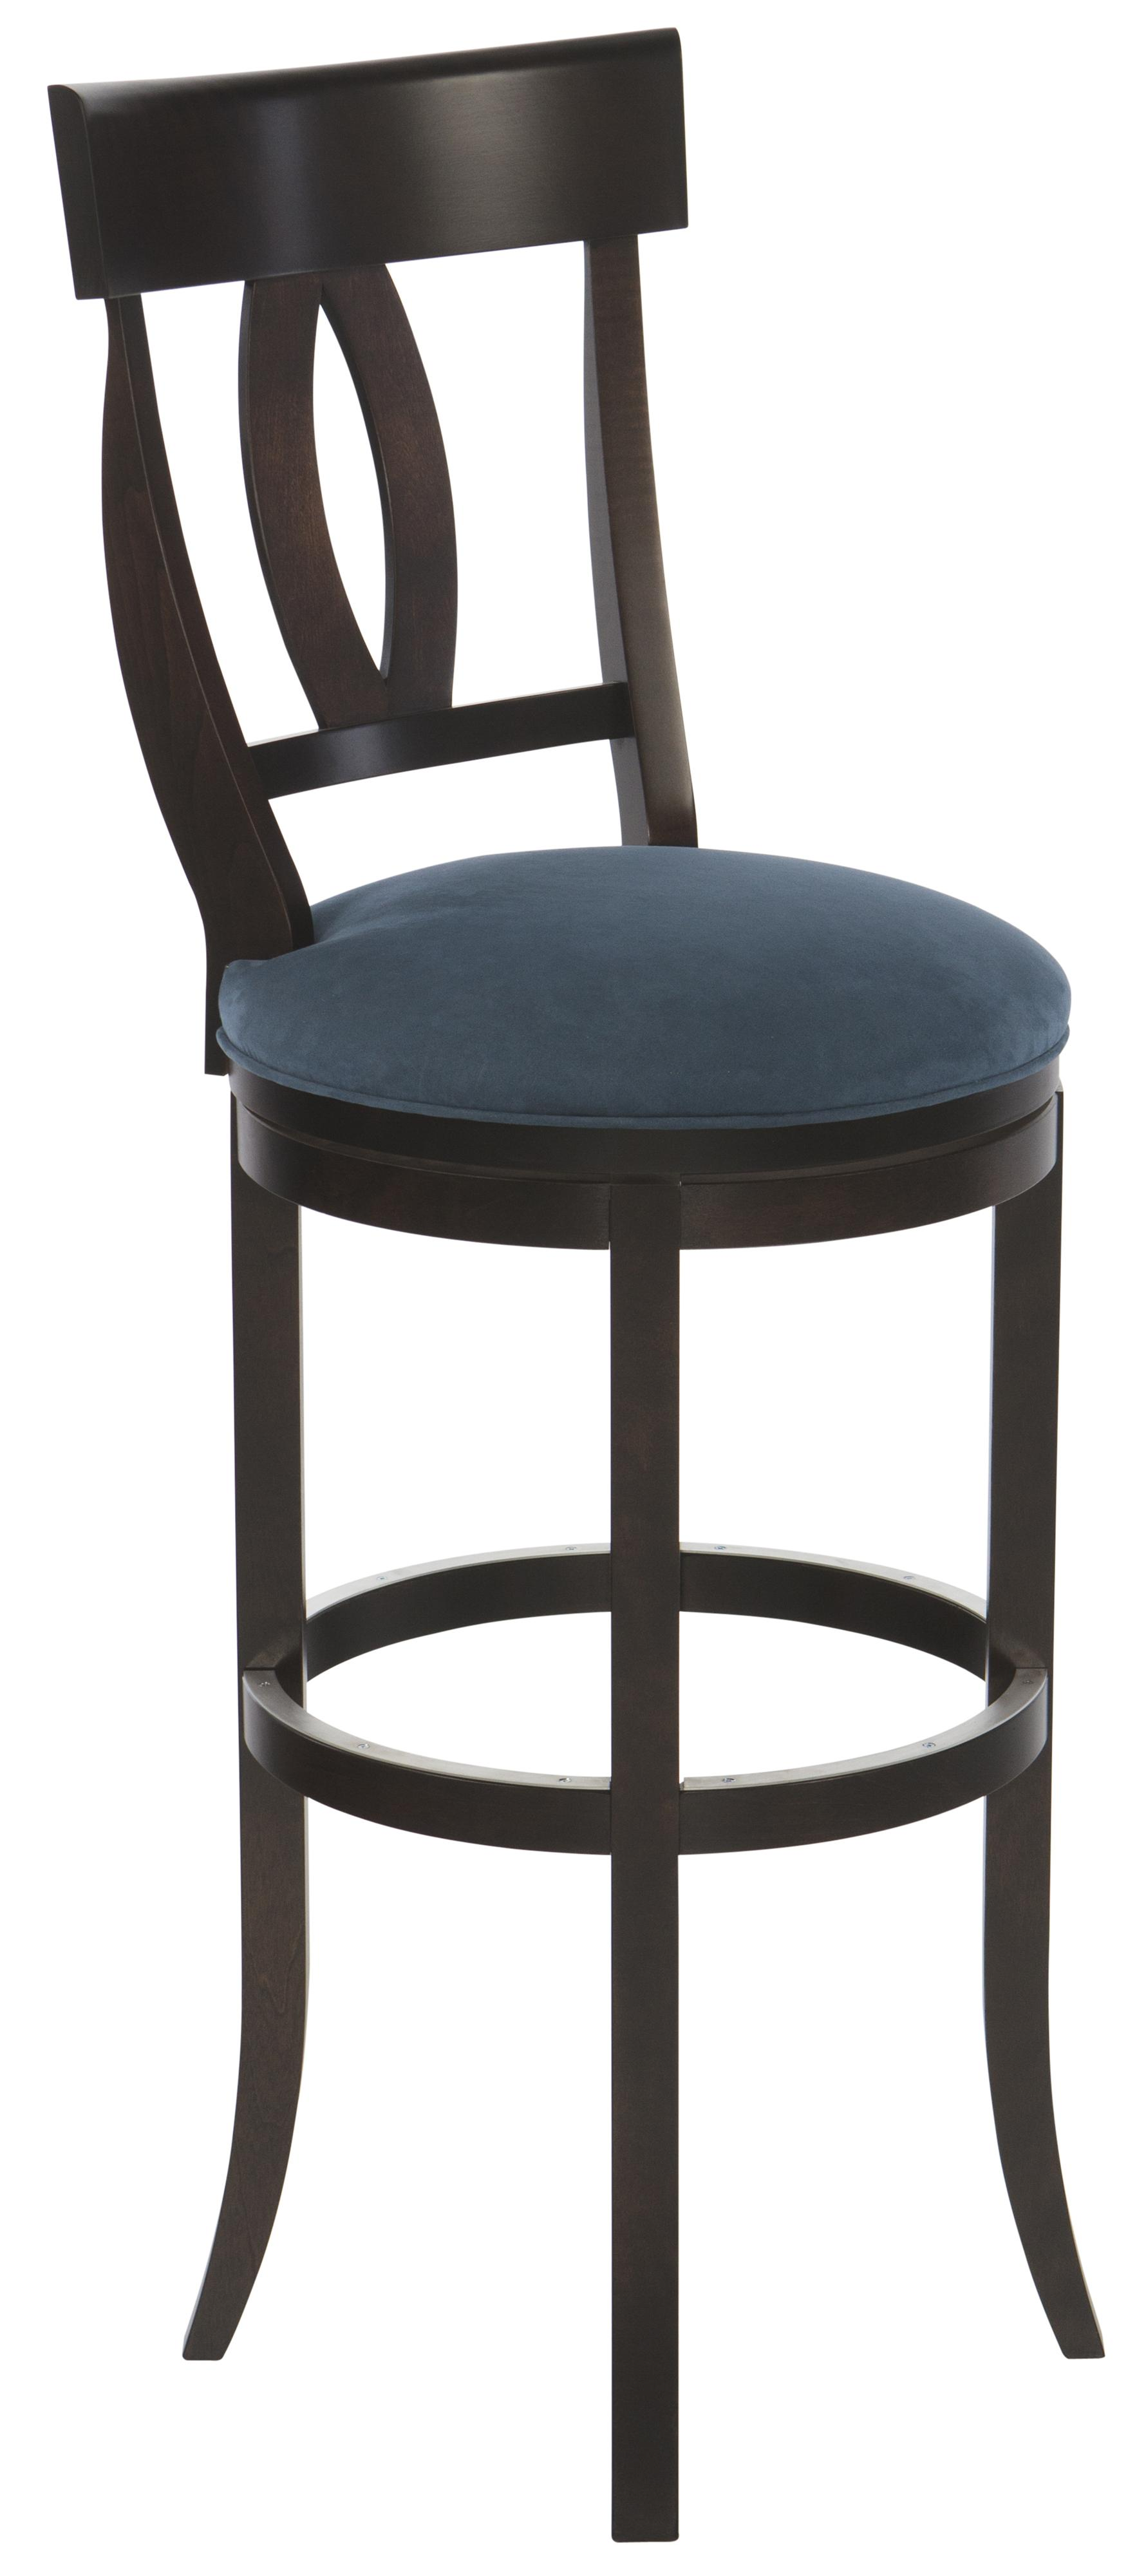 Canadel Bar Stools Sto 8100 34 S Customizable 34